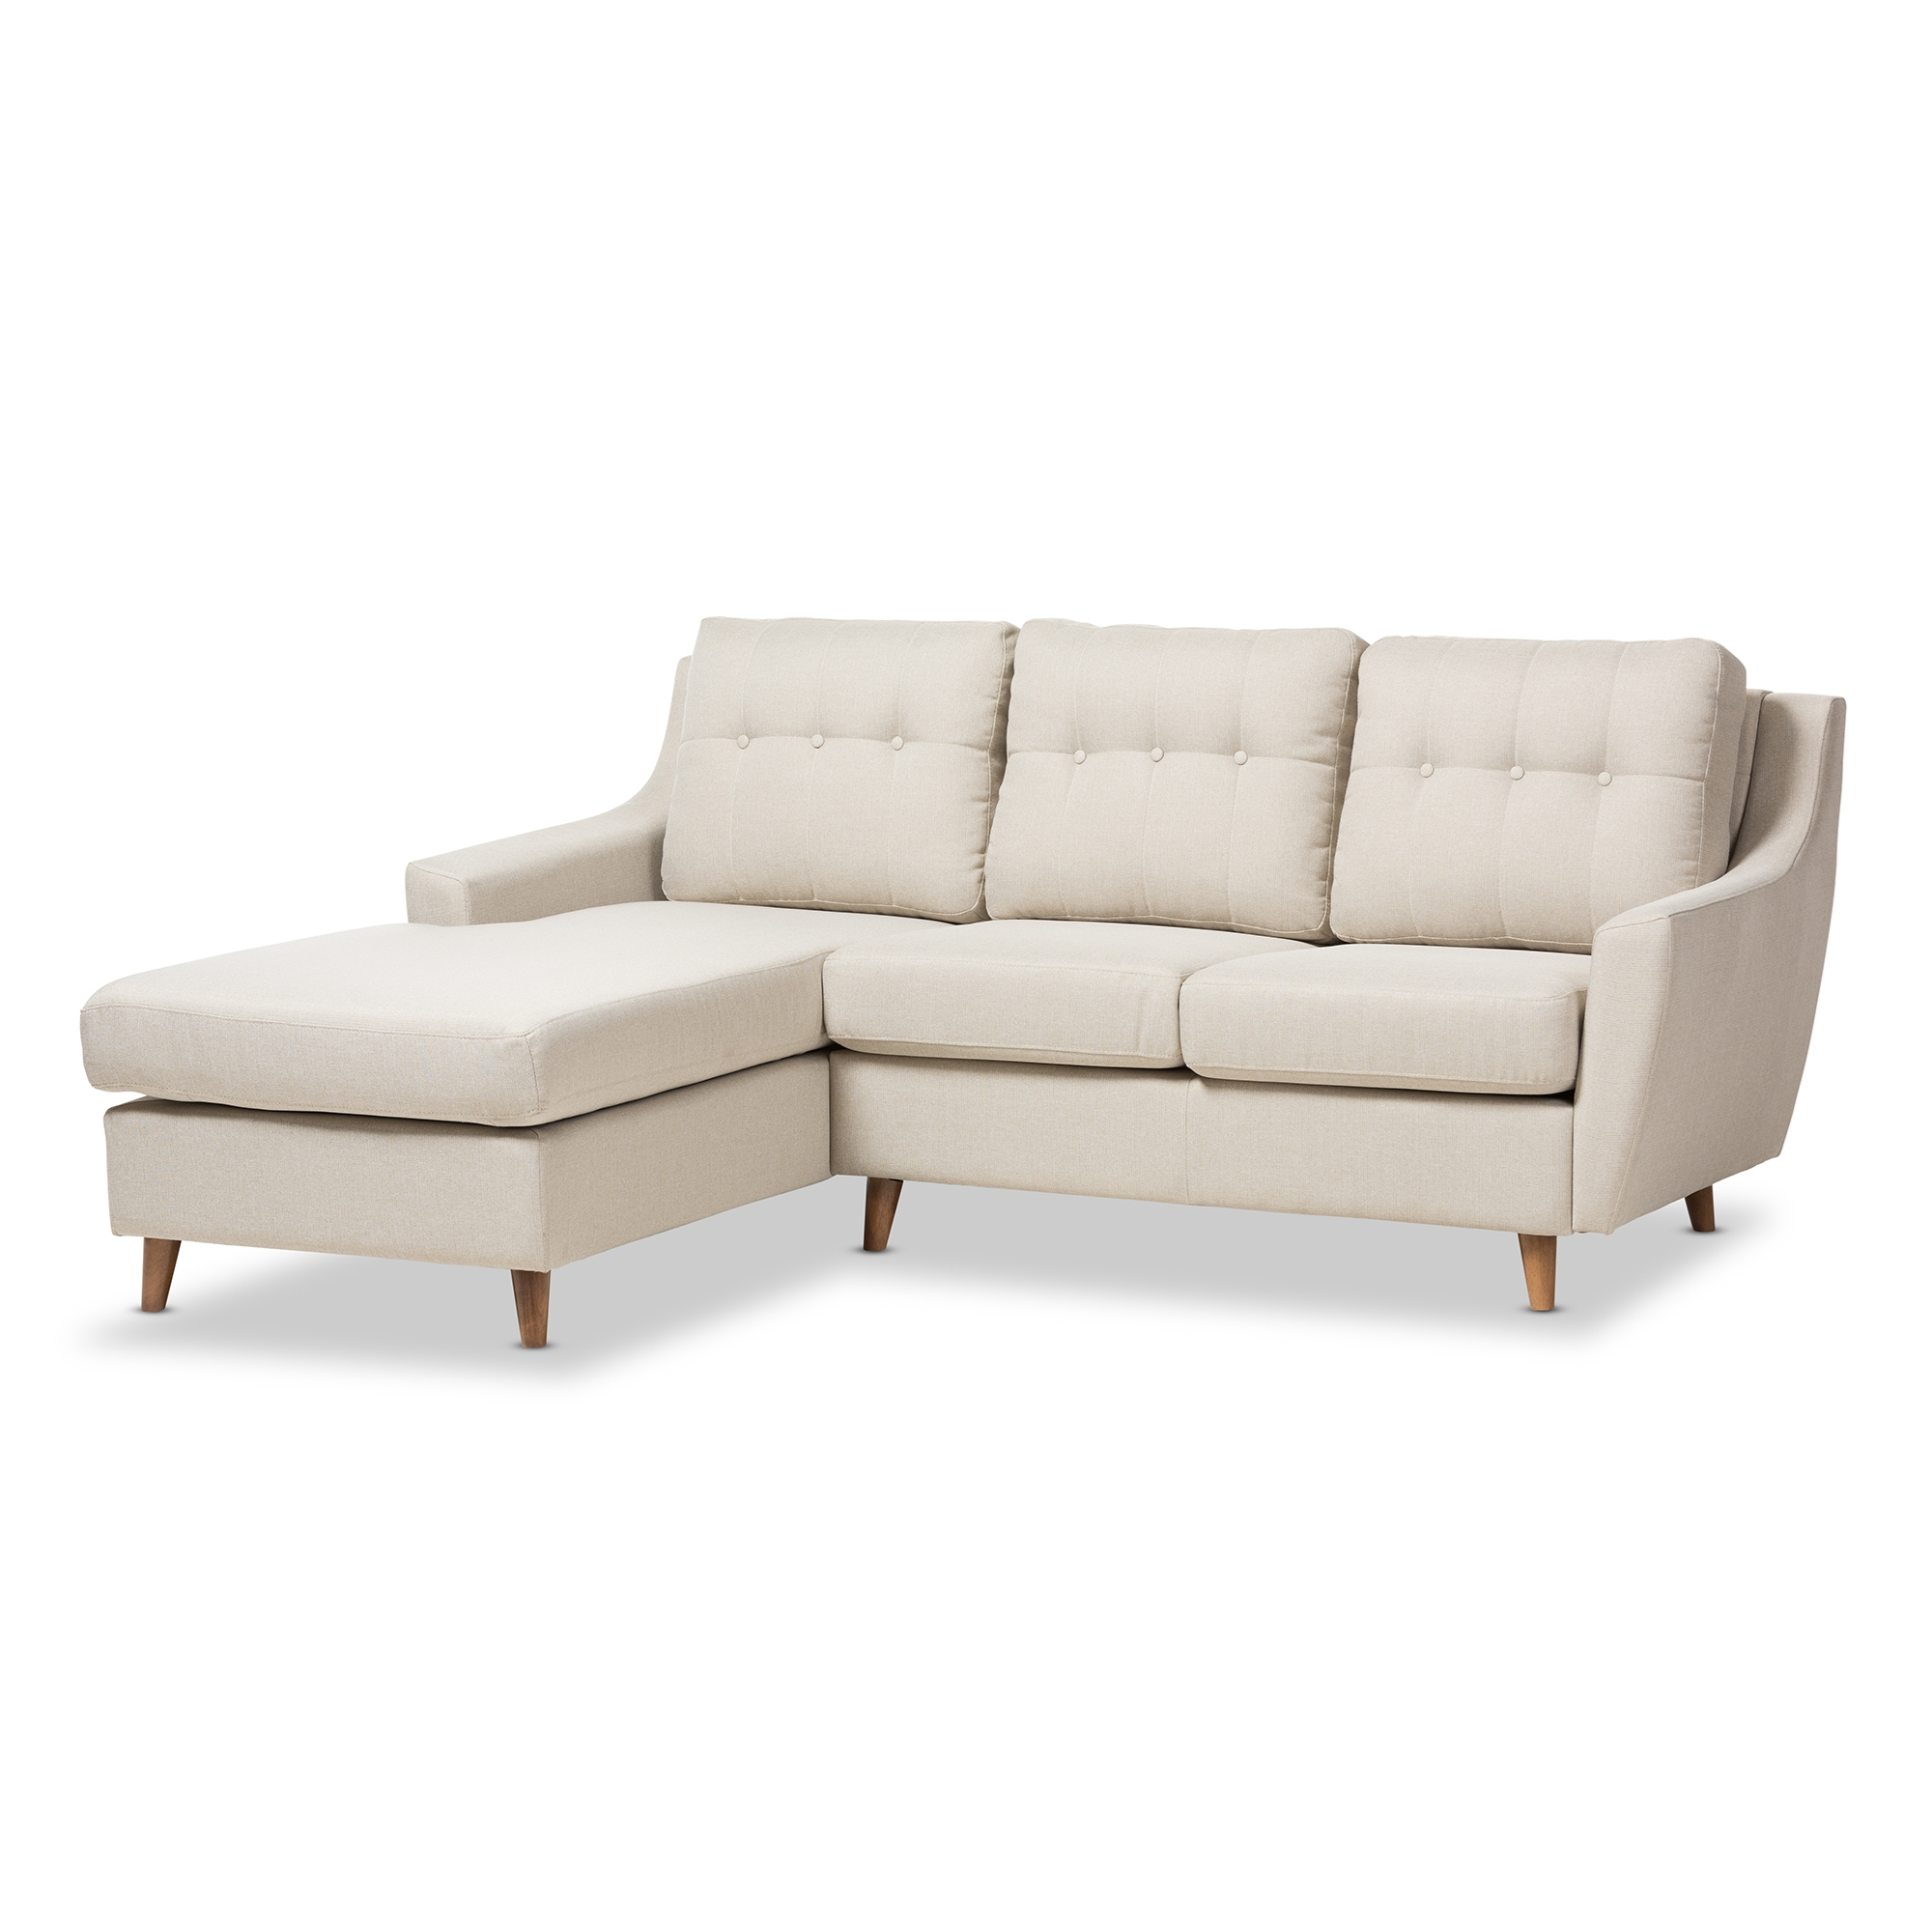 Baxton Studio Mckenzie Mid-Century Light Beige Fabric Button-Tufted 2-Piece Sectional Sofa  sc 1 st  Baxton Studio Outlet : 2 piece sectional sofa with chaise - Sectionals, Sofas & Couches